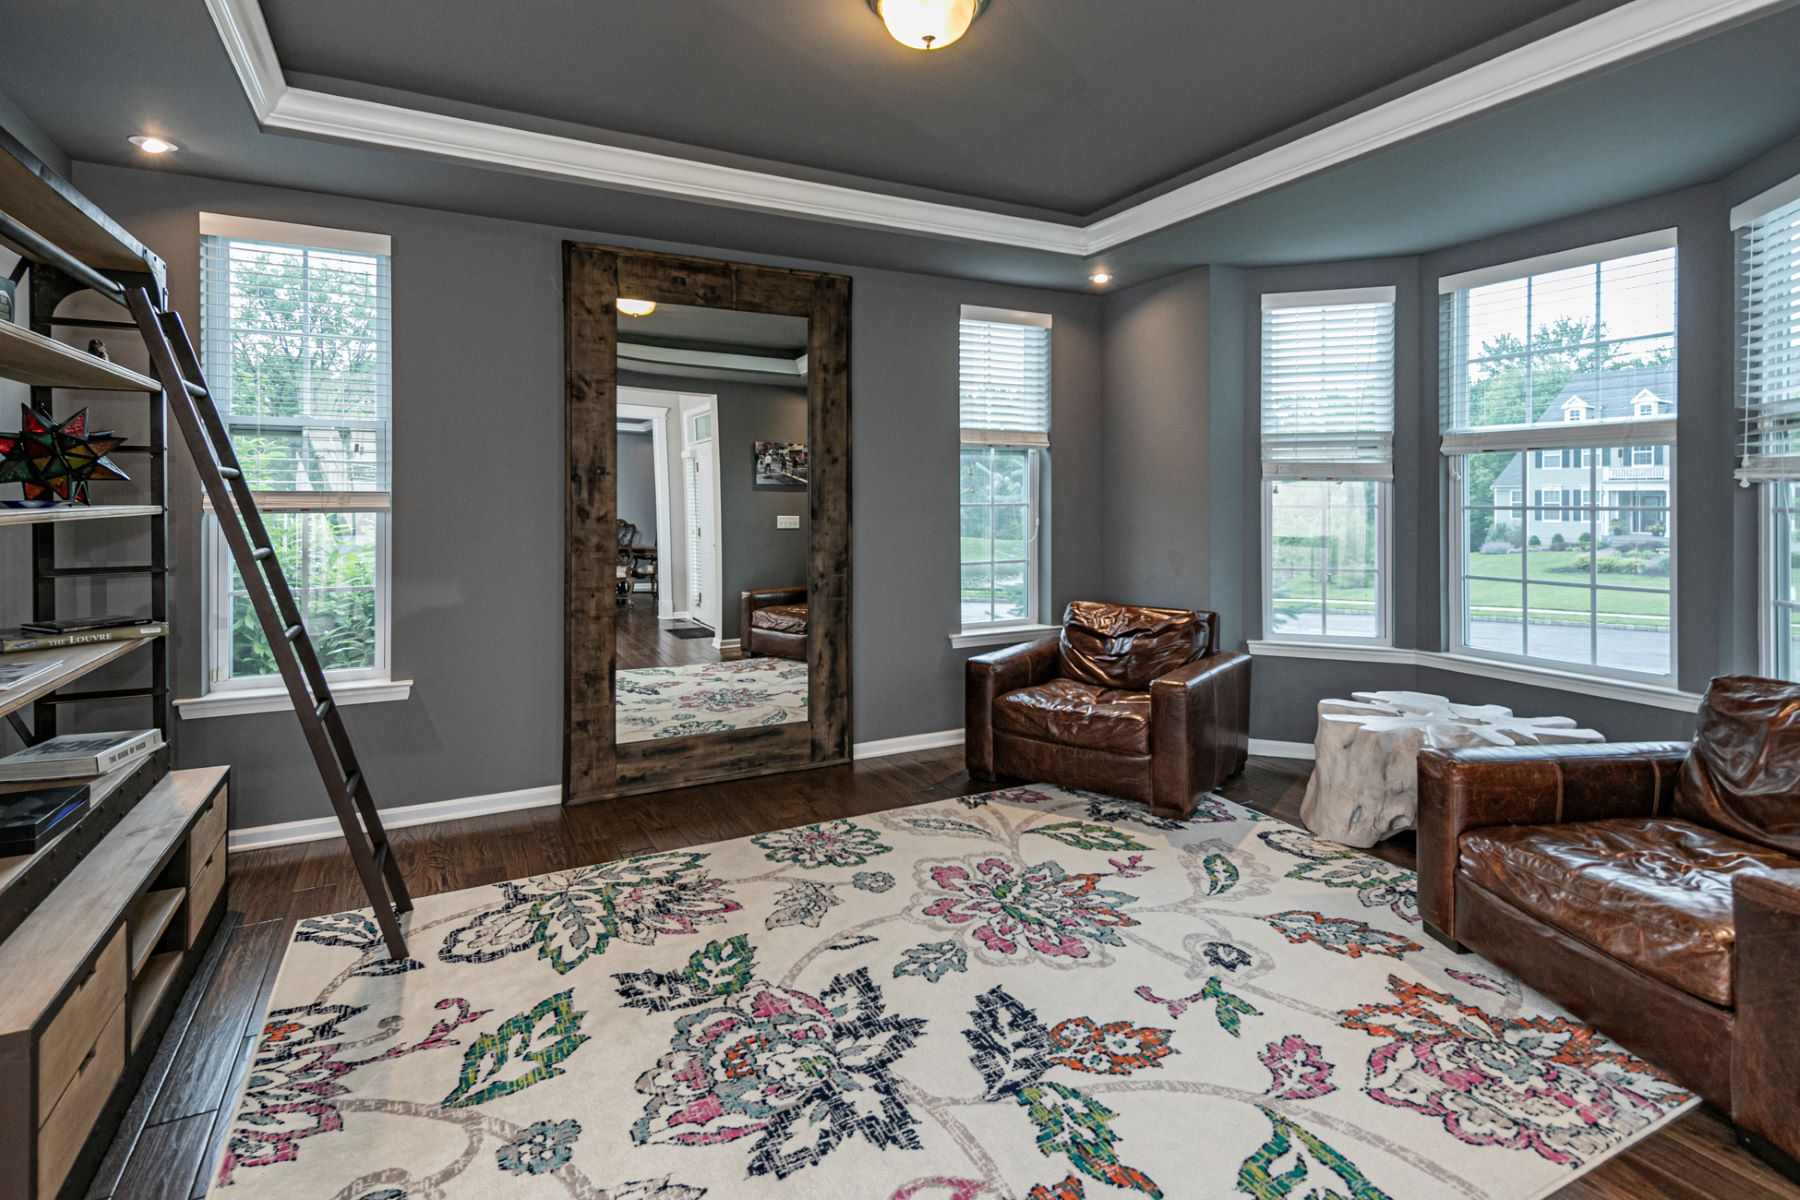 Additional photo for property listing at Designer Home In A Super-Convenient Location 9 Bramble Drive, Pennington, New Jersey 08534 United States